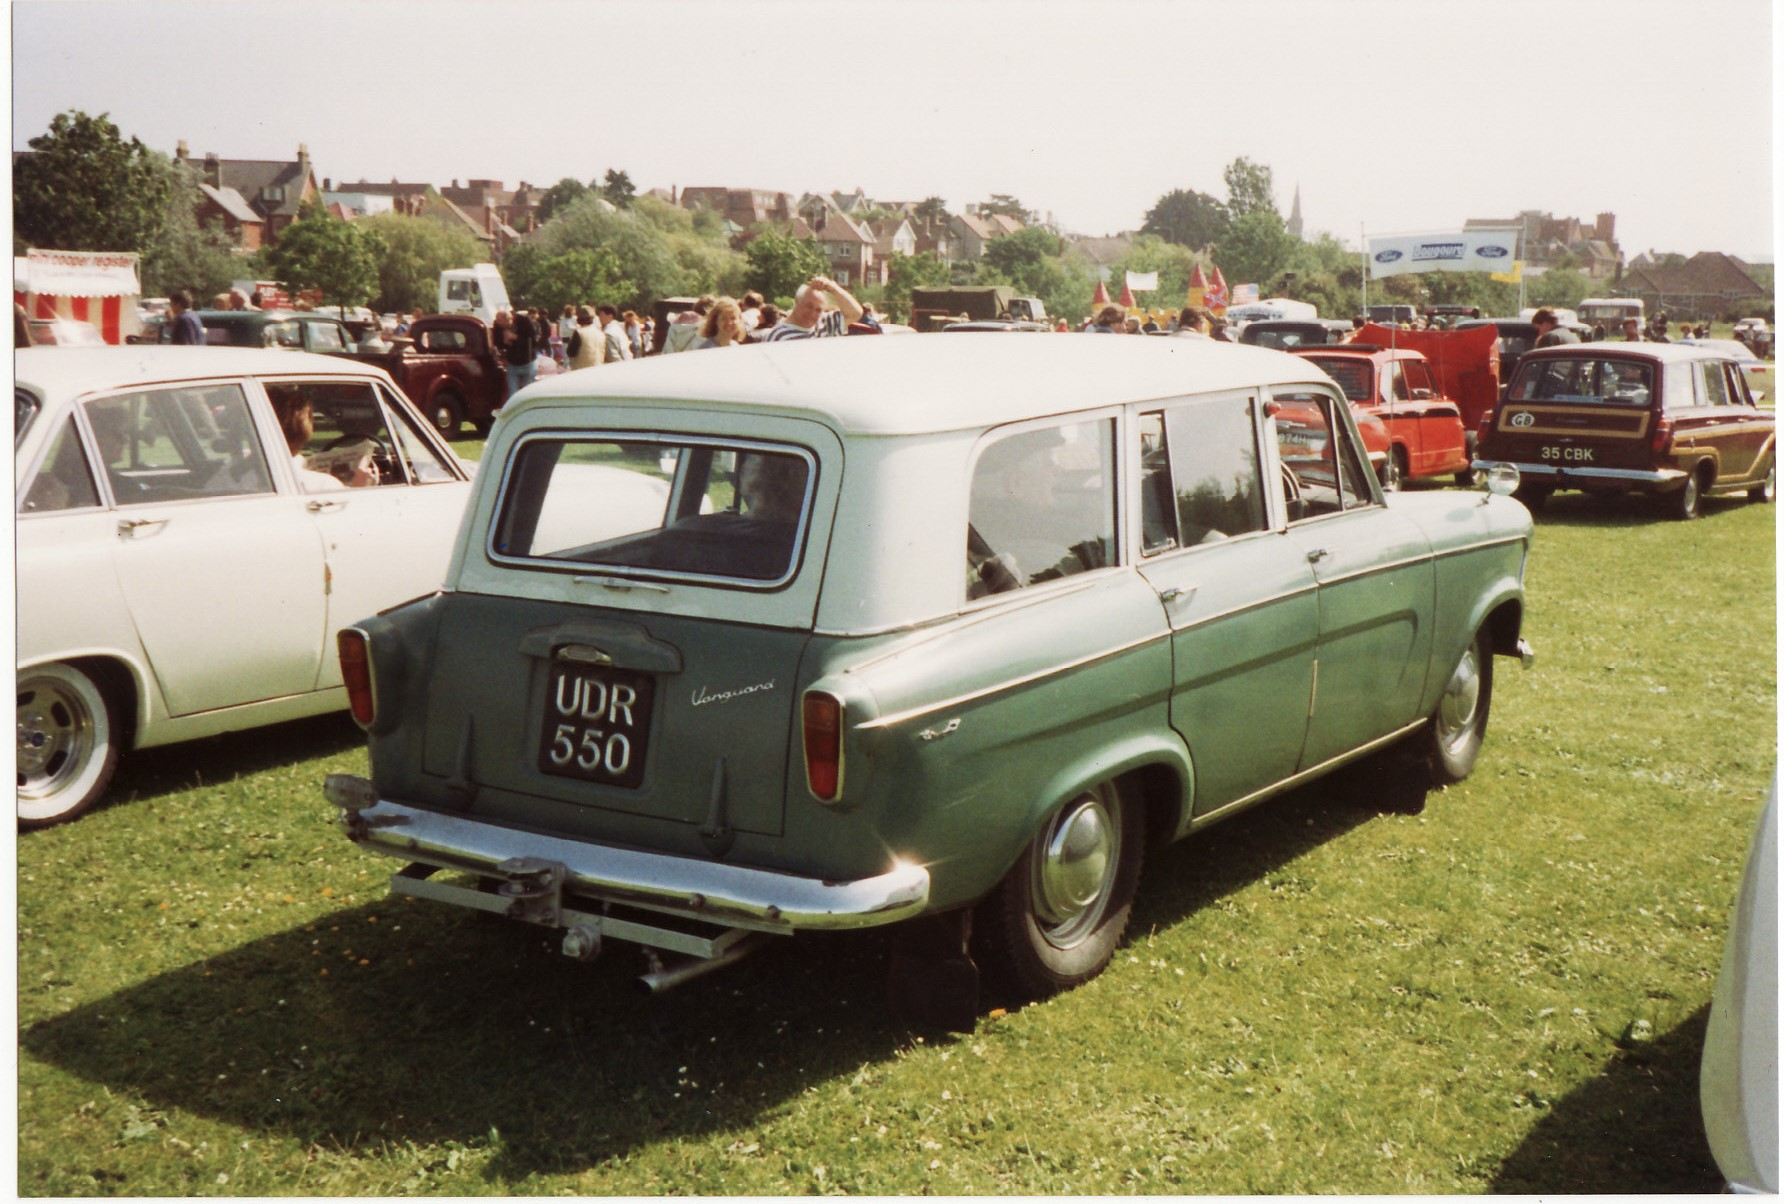 File:Standard Vanguard Estate Car (16325915339).jpg - Wikimedia Commons